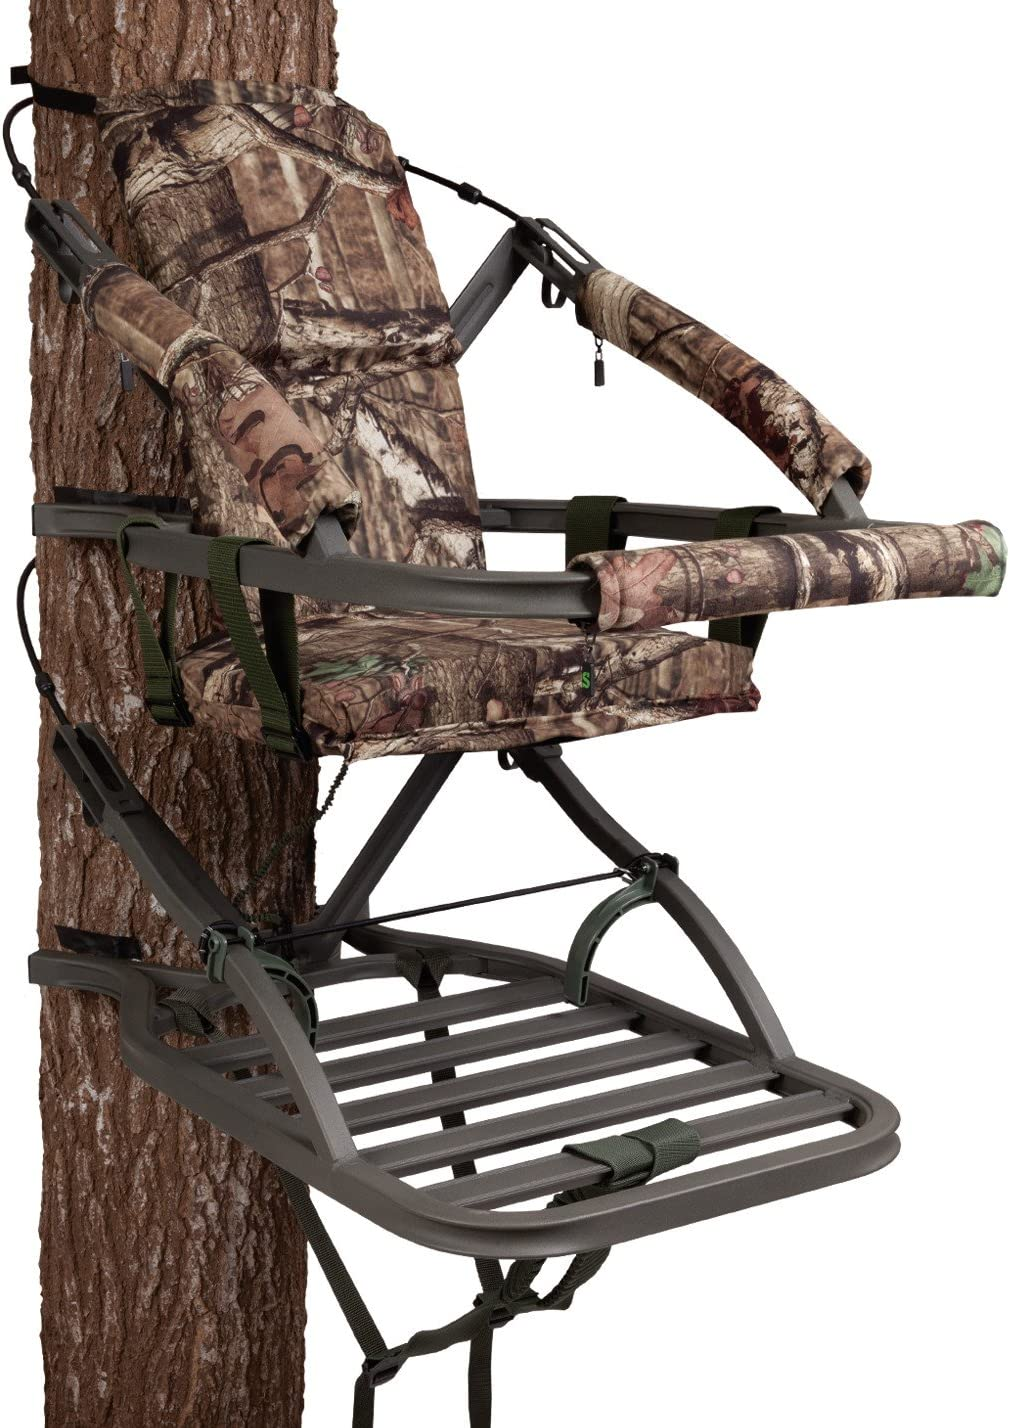 Summit Goliath Sd 81120 Viper Climbing Treestand